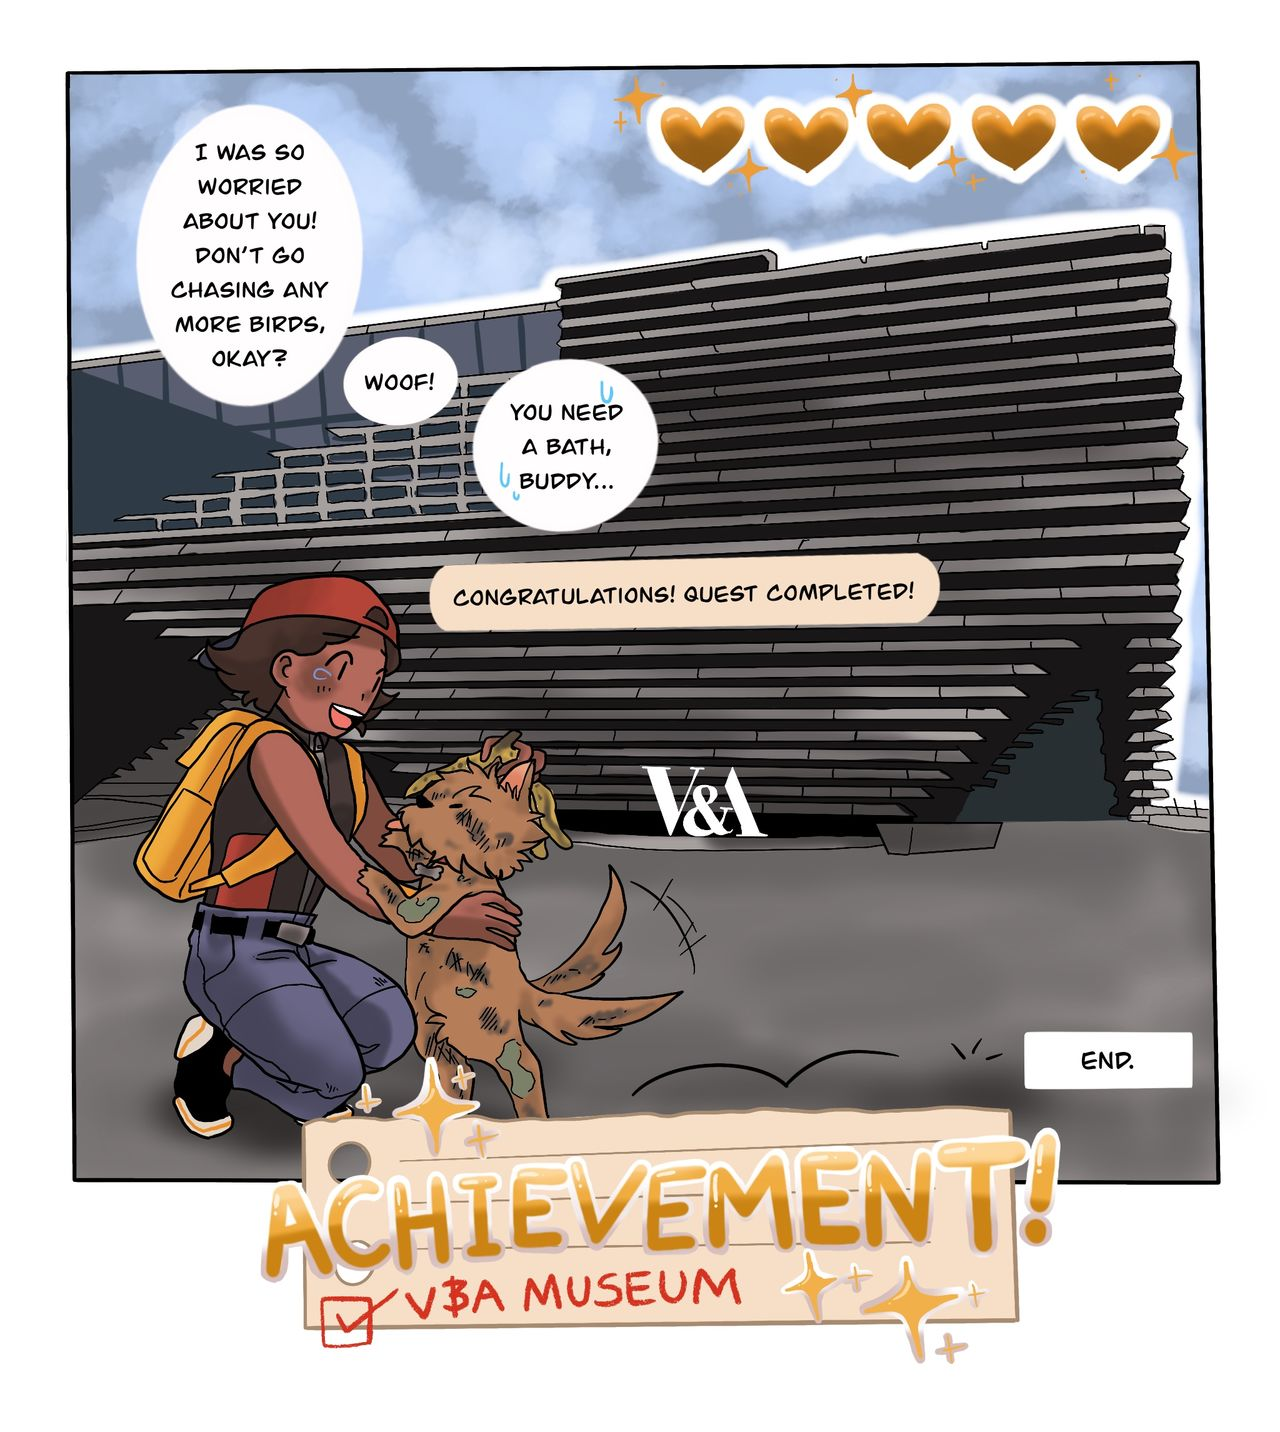 This webcomic show the main character and their dog having a cuddle in front of V&A Dundee. The achievement unlocked is V&A Dundee.